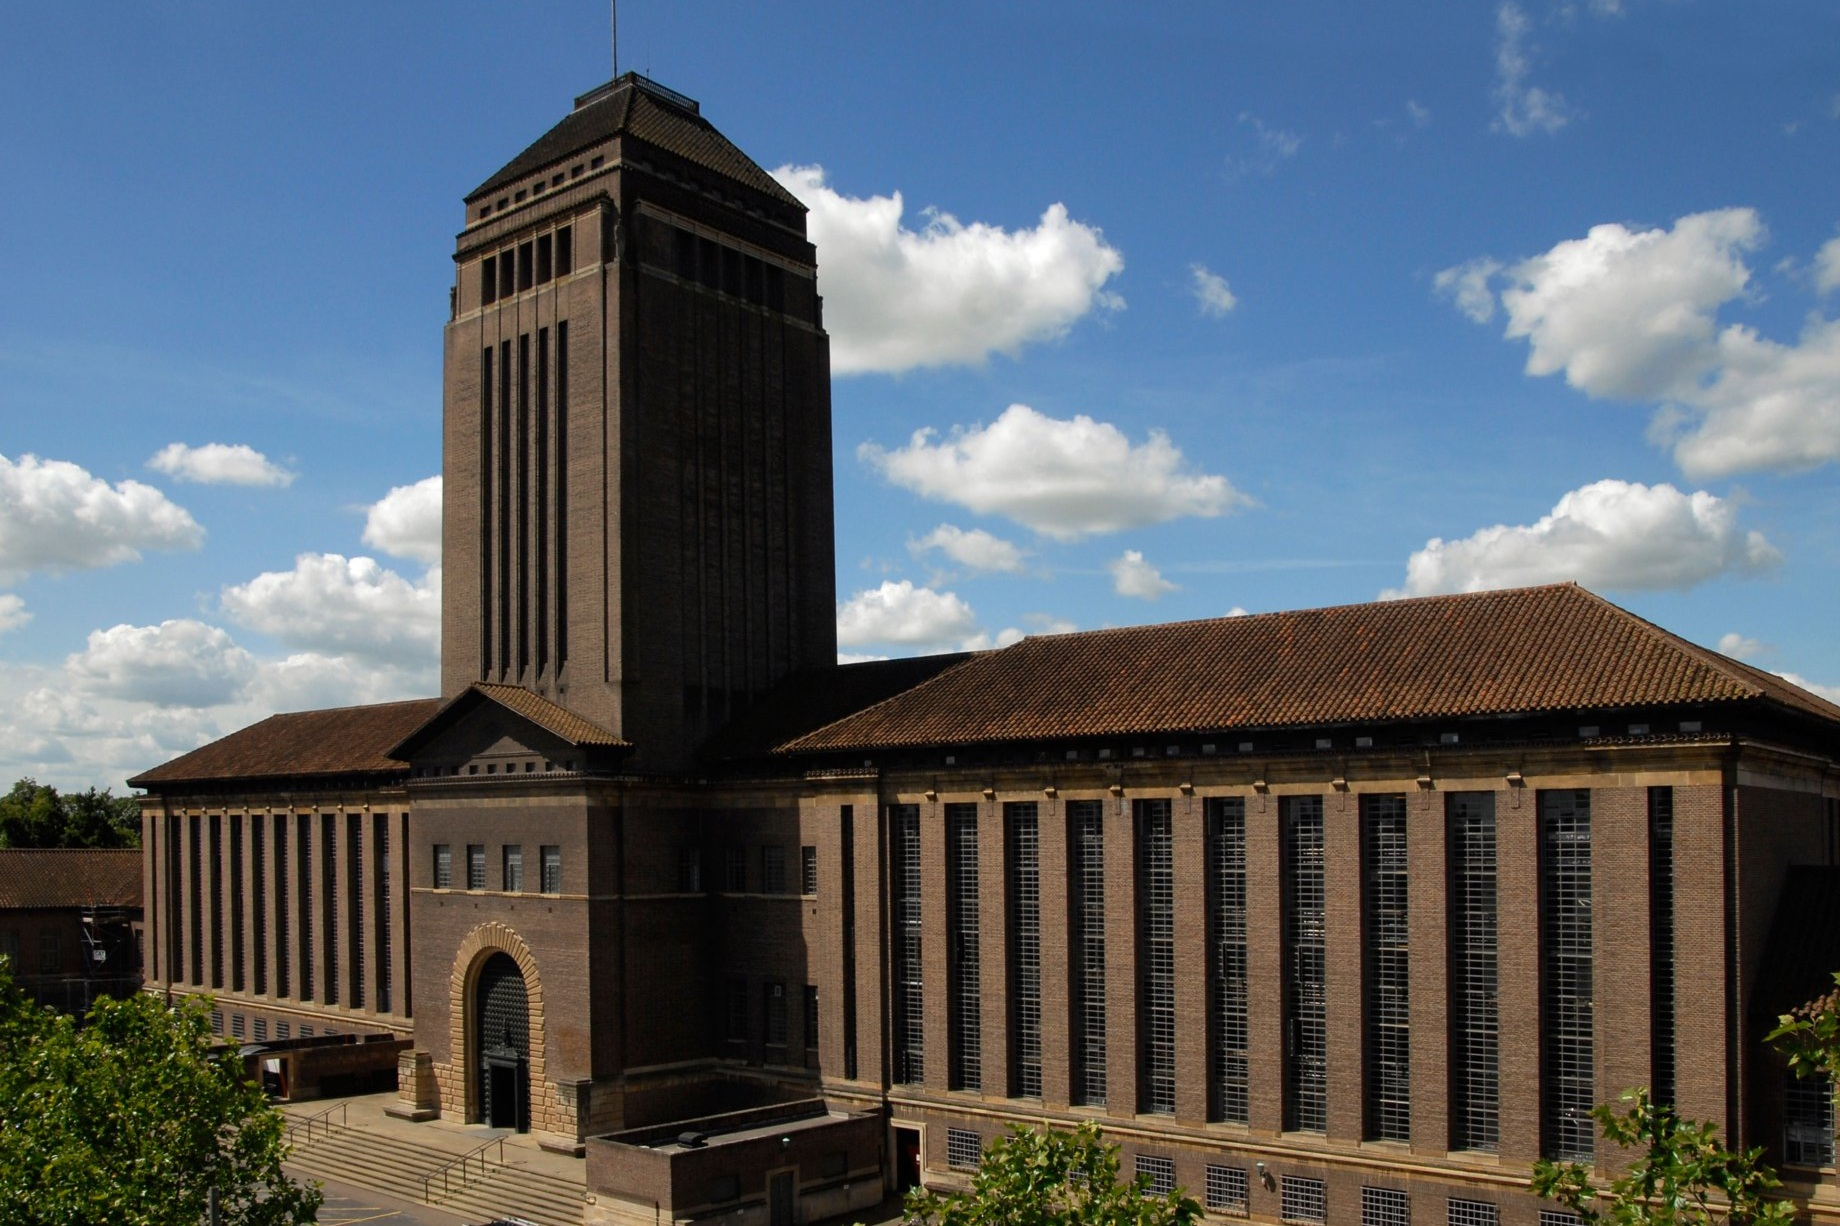 University Library, Cambridge